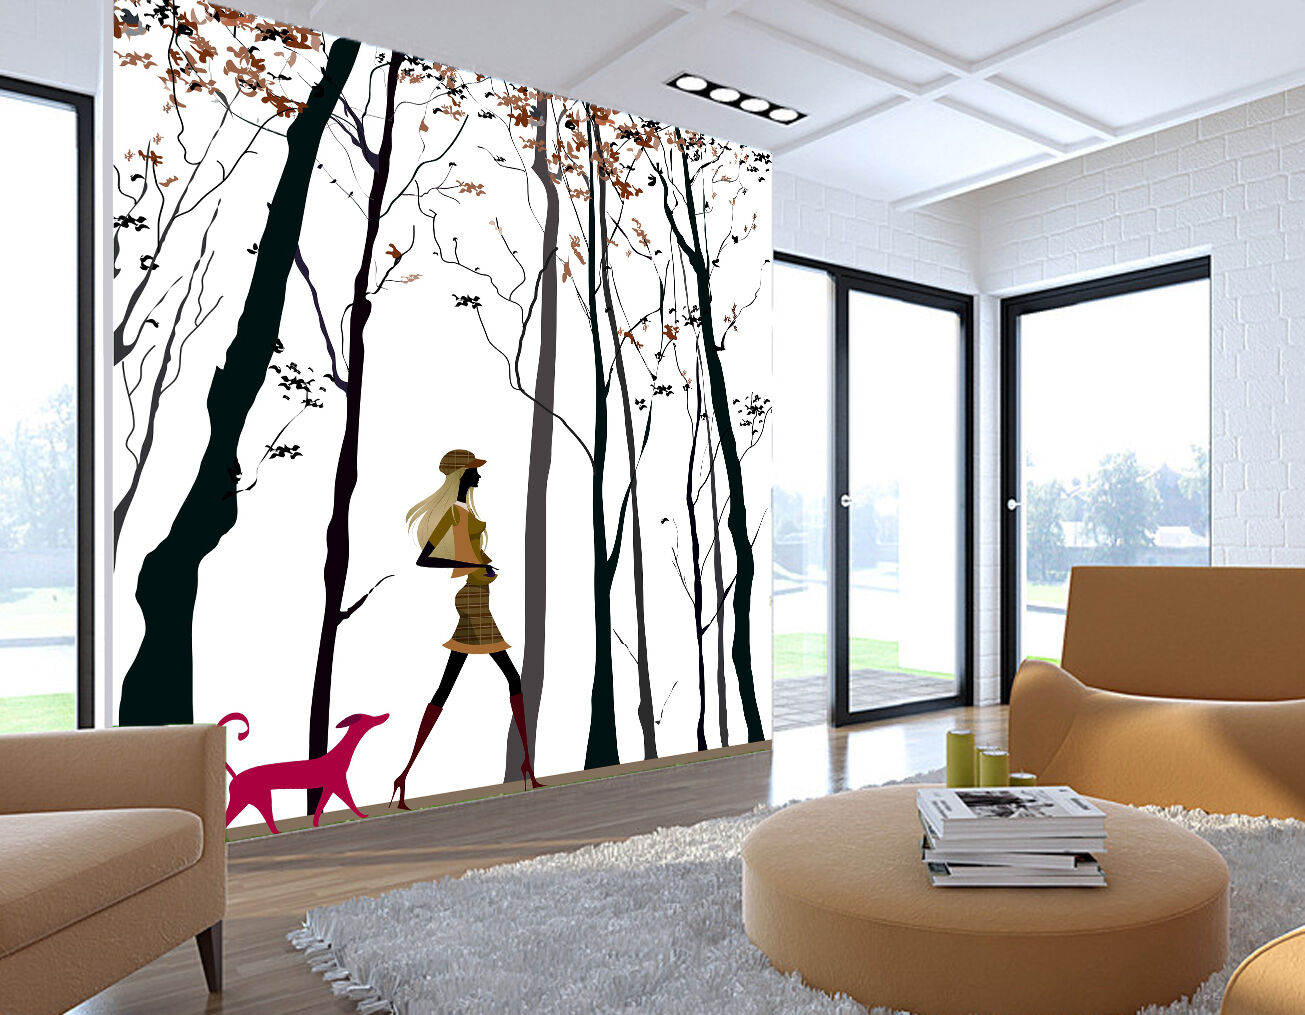 3D Graffiti branch puppy Wall Paper Print Decal Wall Deco Indoor wall Mural